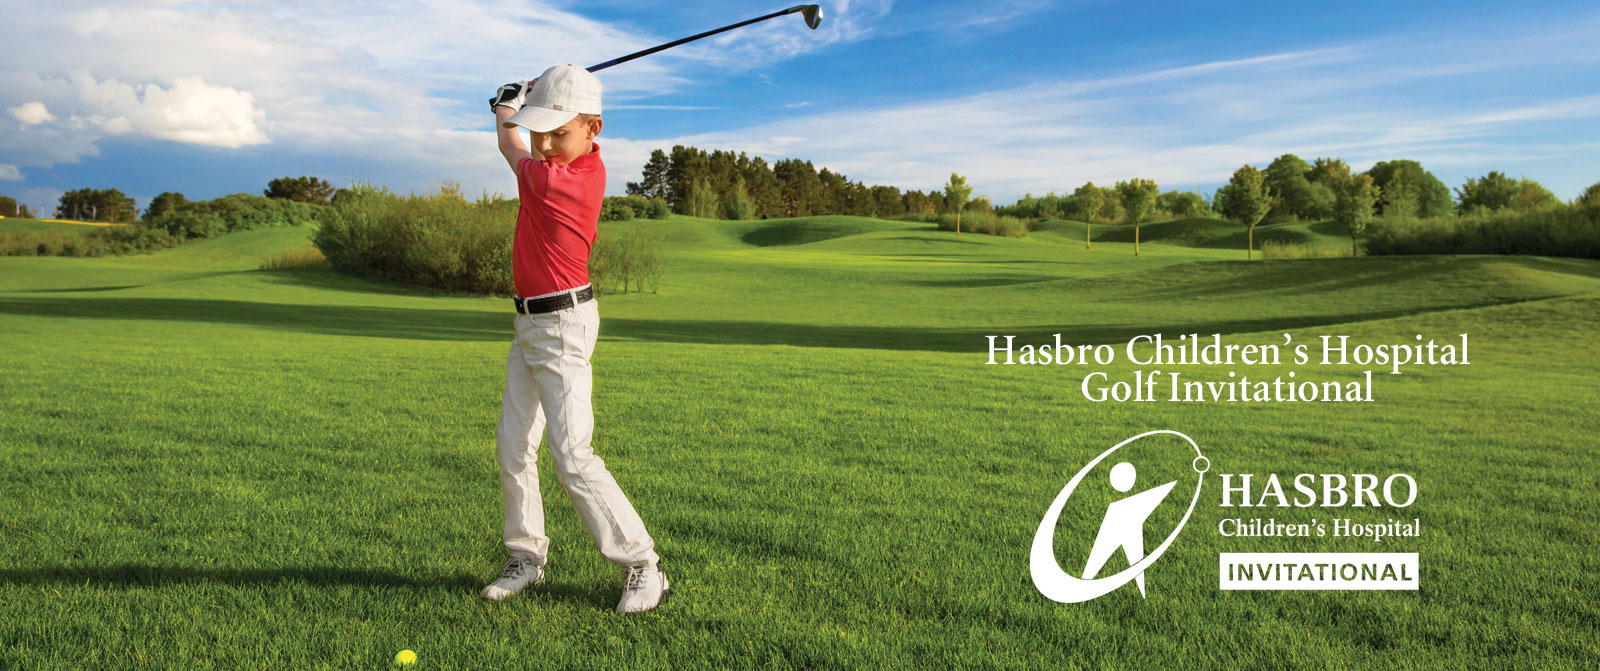 2019 Hasbro Children's Hospital Golf Tournament